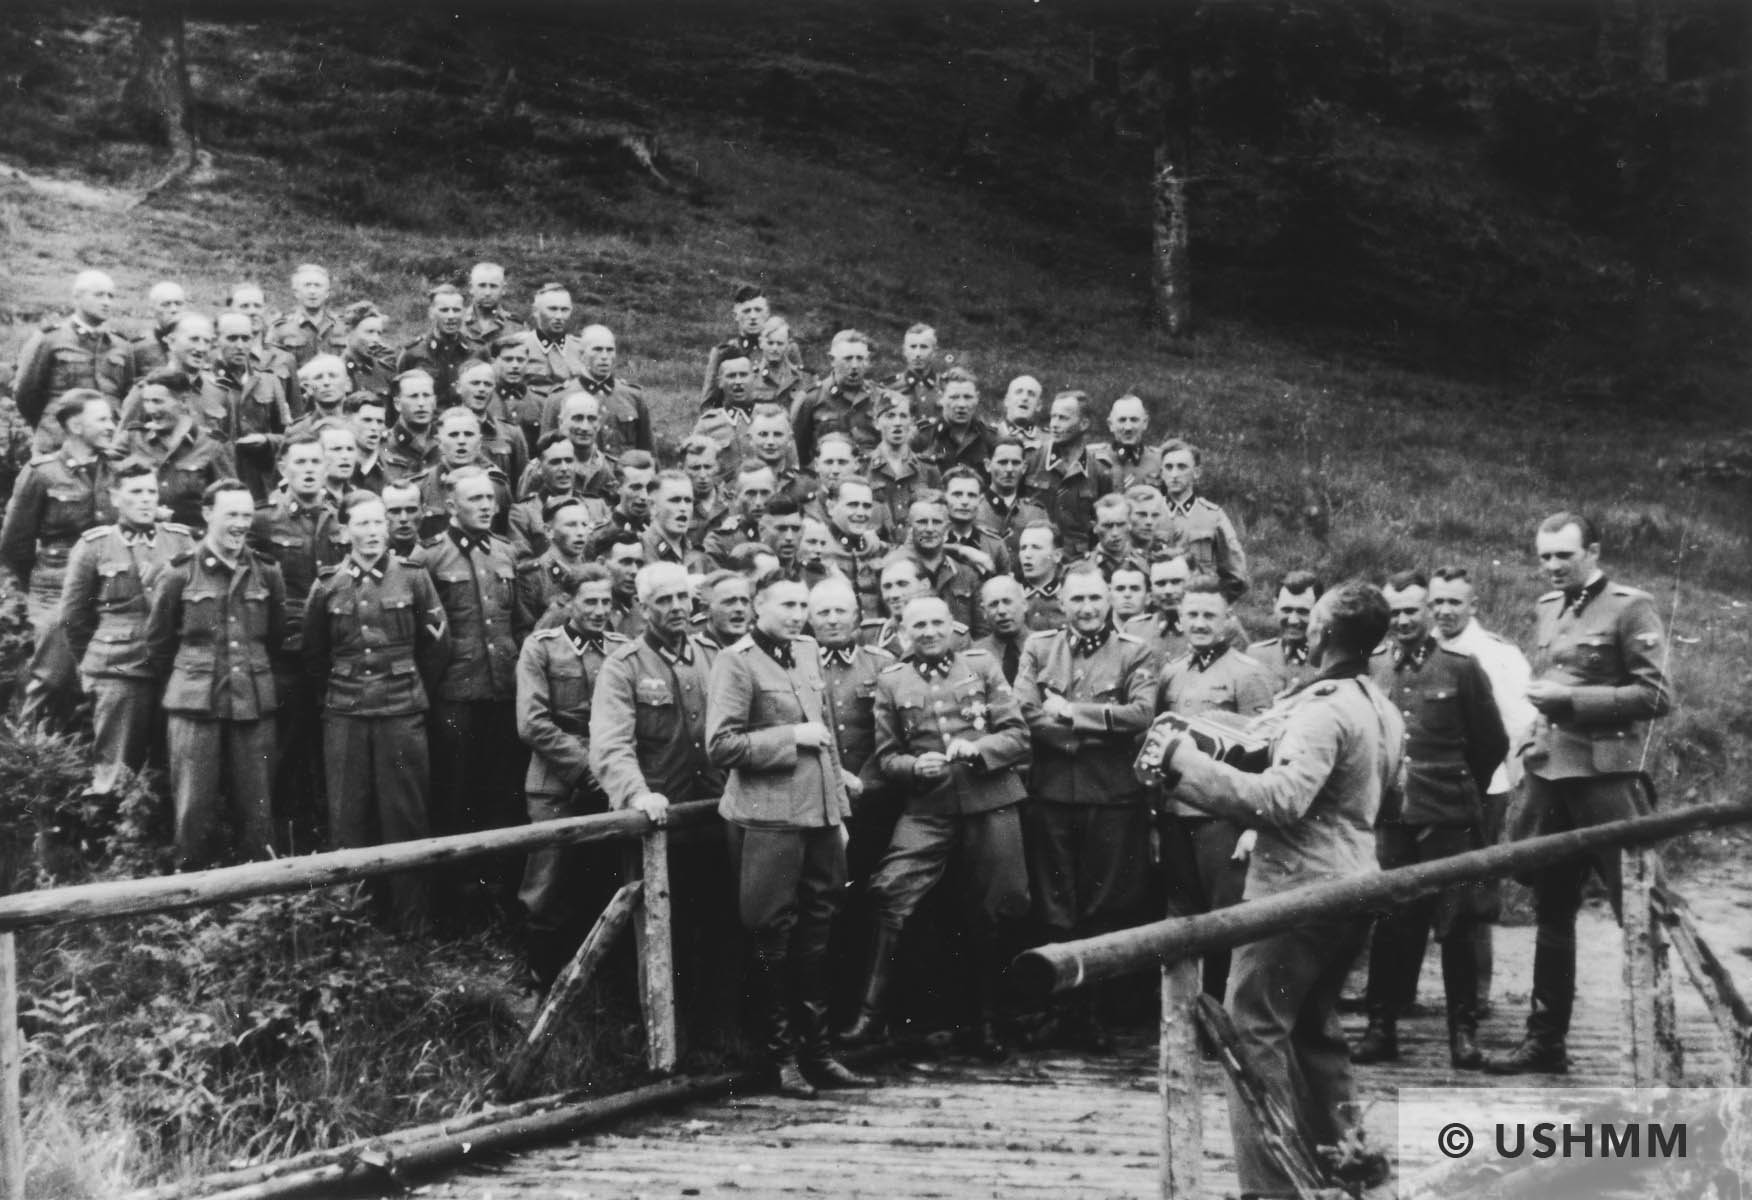 An accordionist leads a sing-along for SS officers at their retreat at Solahütte outside Auschwitz. USHMM 34739